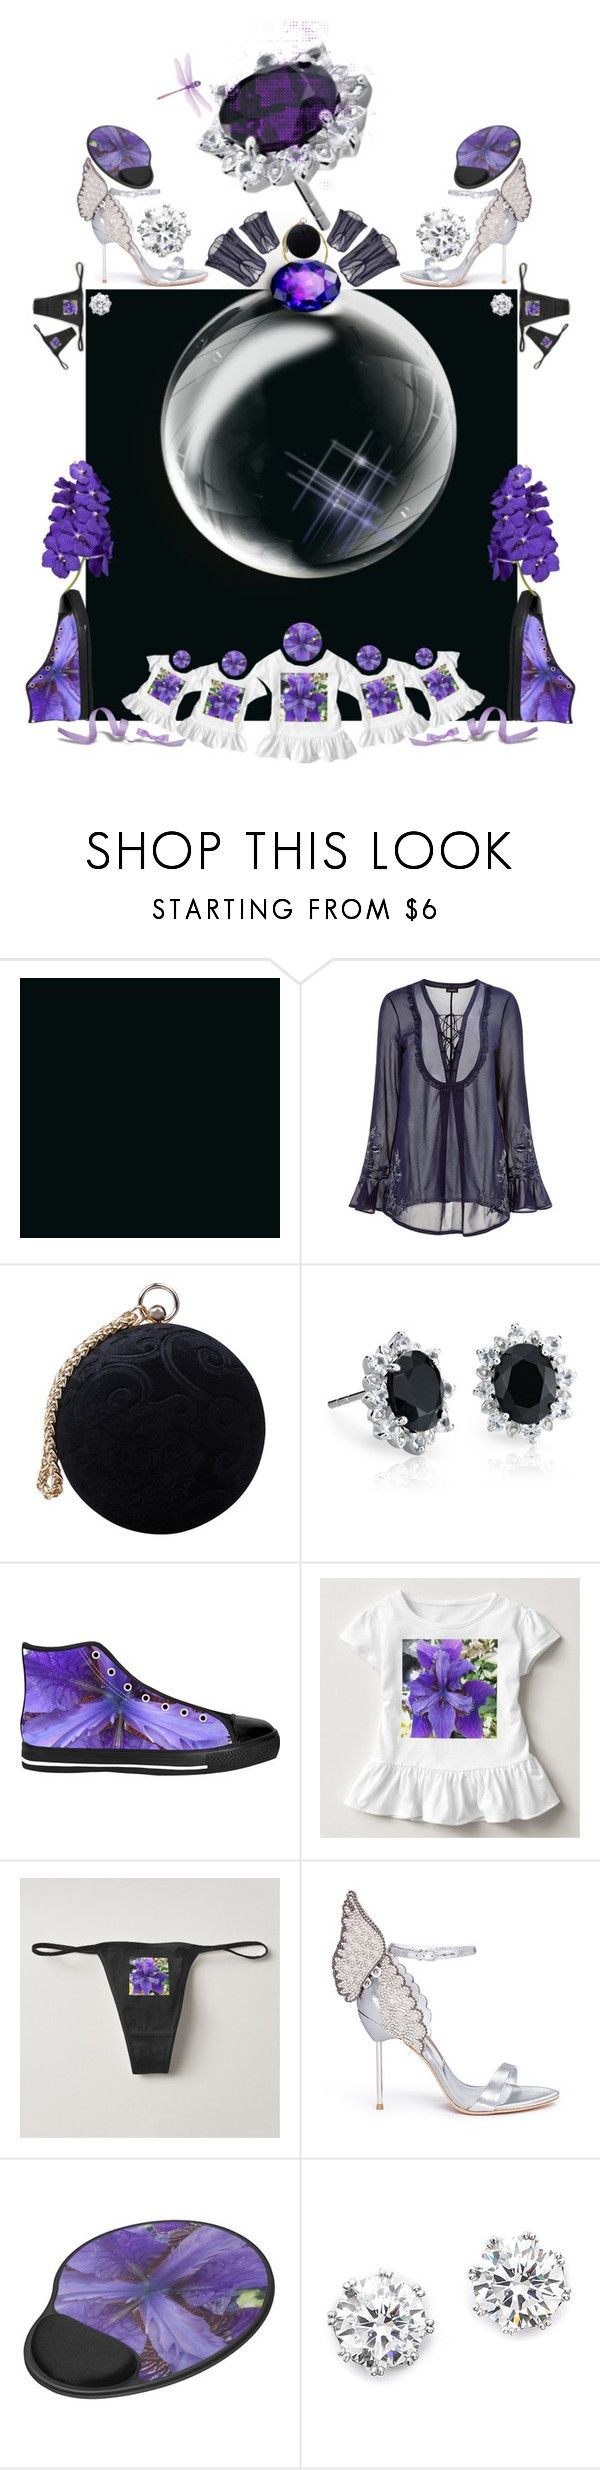 """""""Diary of a Loaded Idea."""" by gayeelise ❤ liked on Polyvore featuring La Perla, Carvela, Blue Nile, Sophia Webster and Kenneth Jay Lane"""